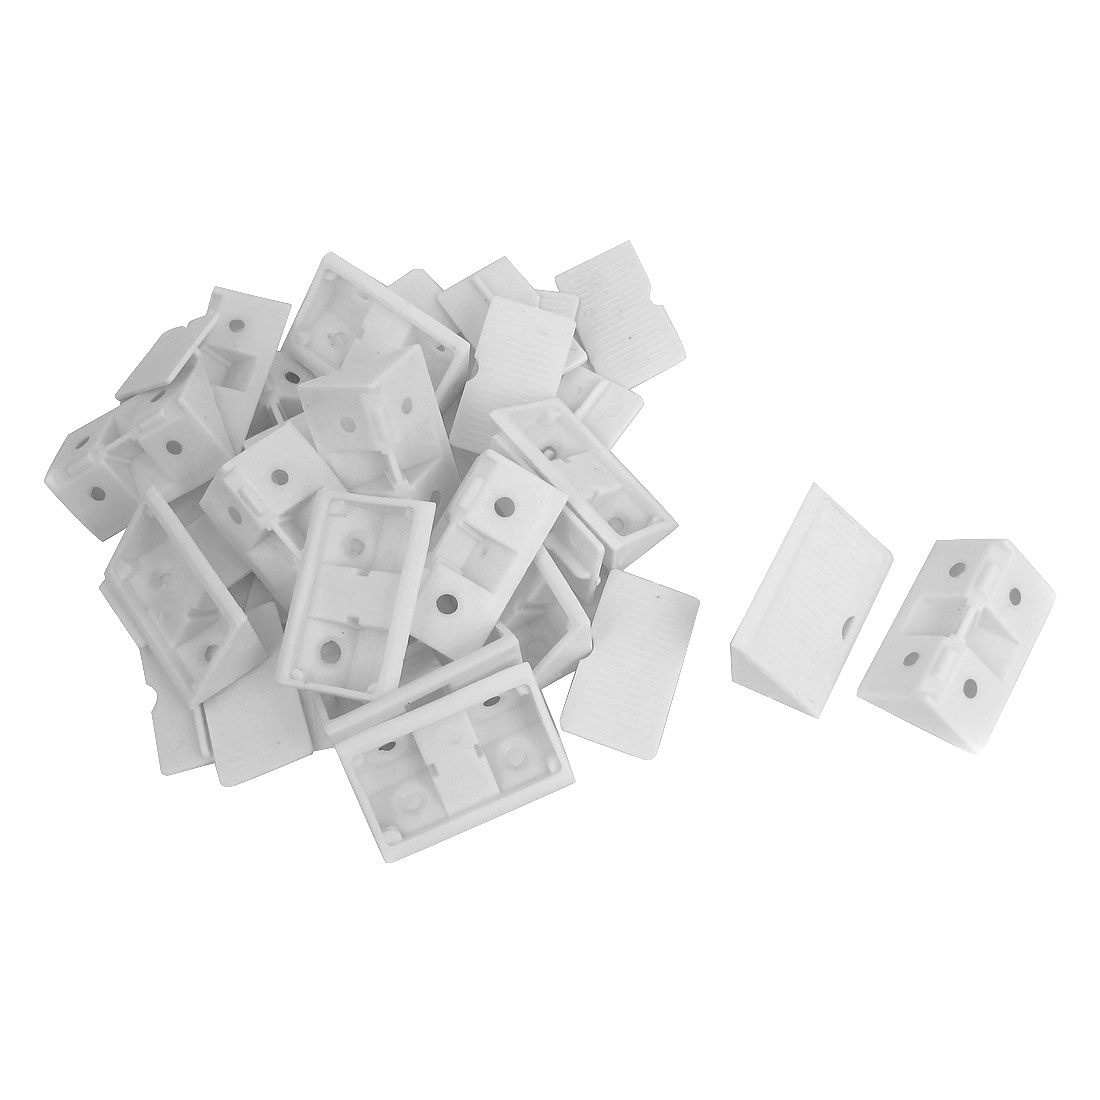 90 Degree White Plastic Furniture Closet Cabinet Corner Bracket Connectors Support 18pcs